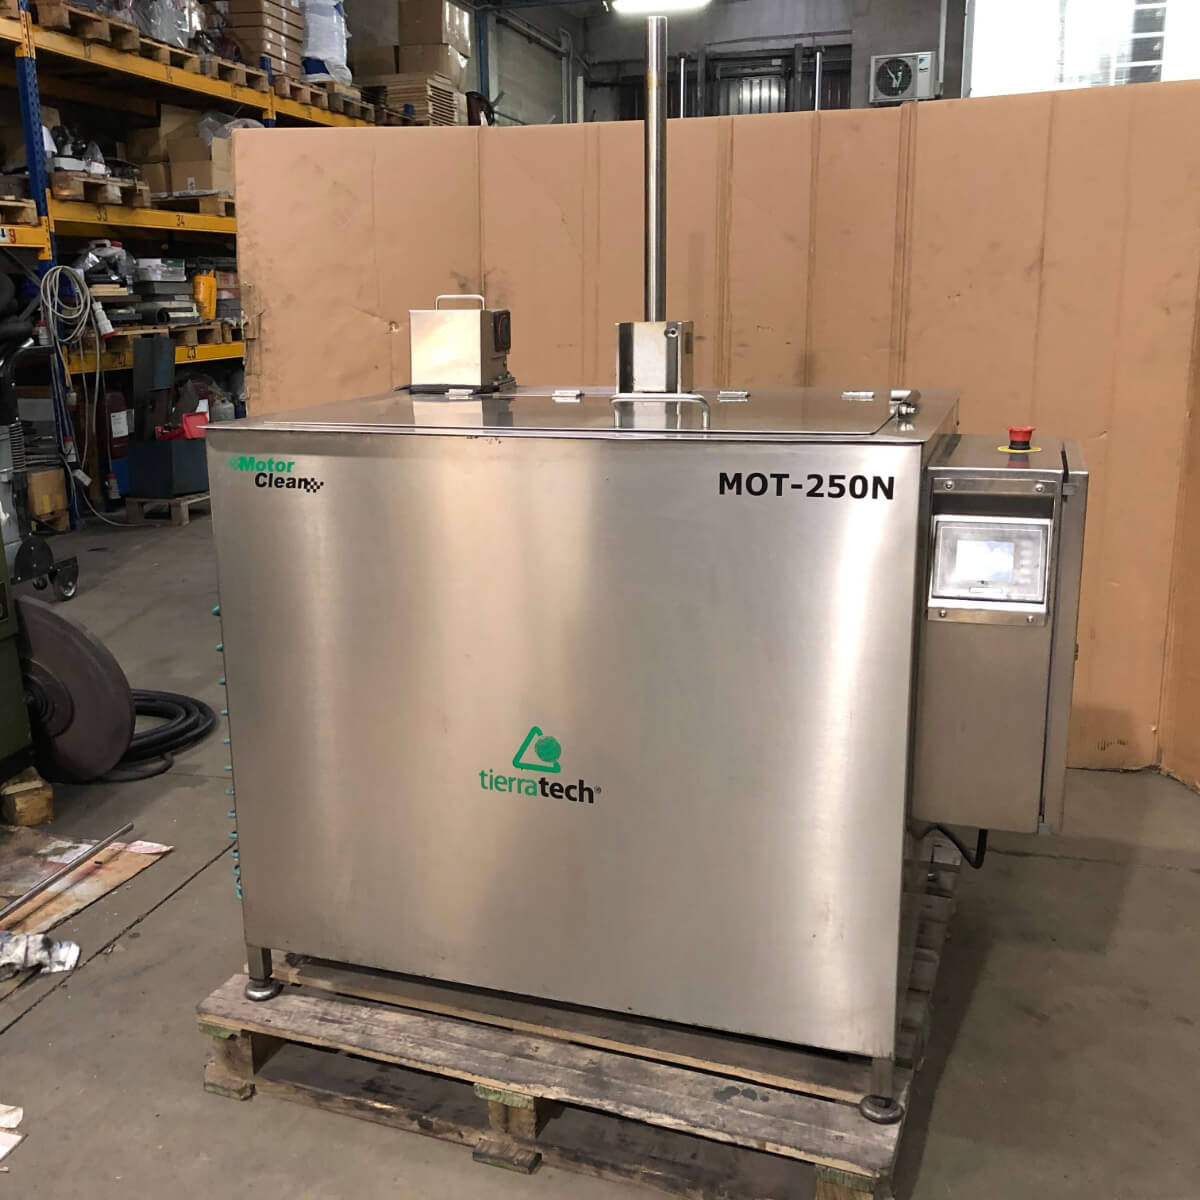 TIERRATECH MOT 250 N Used Ultrasonic Washing Machine